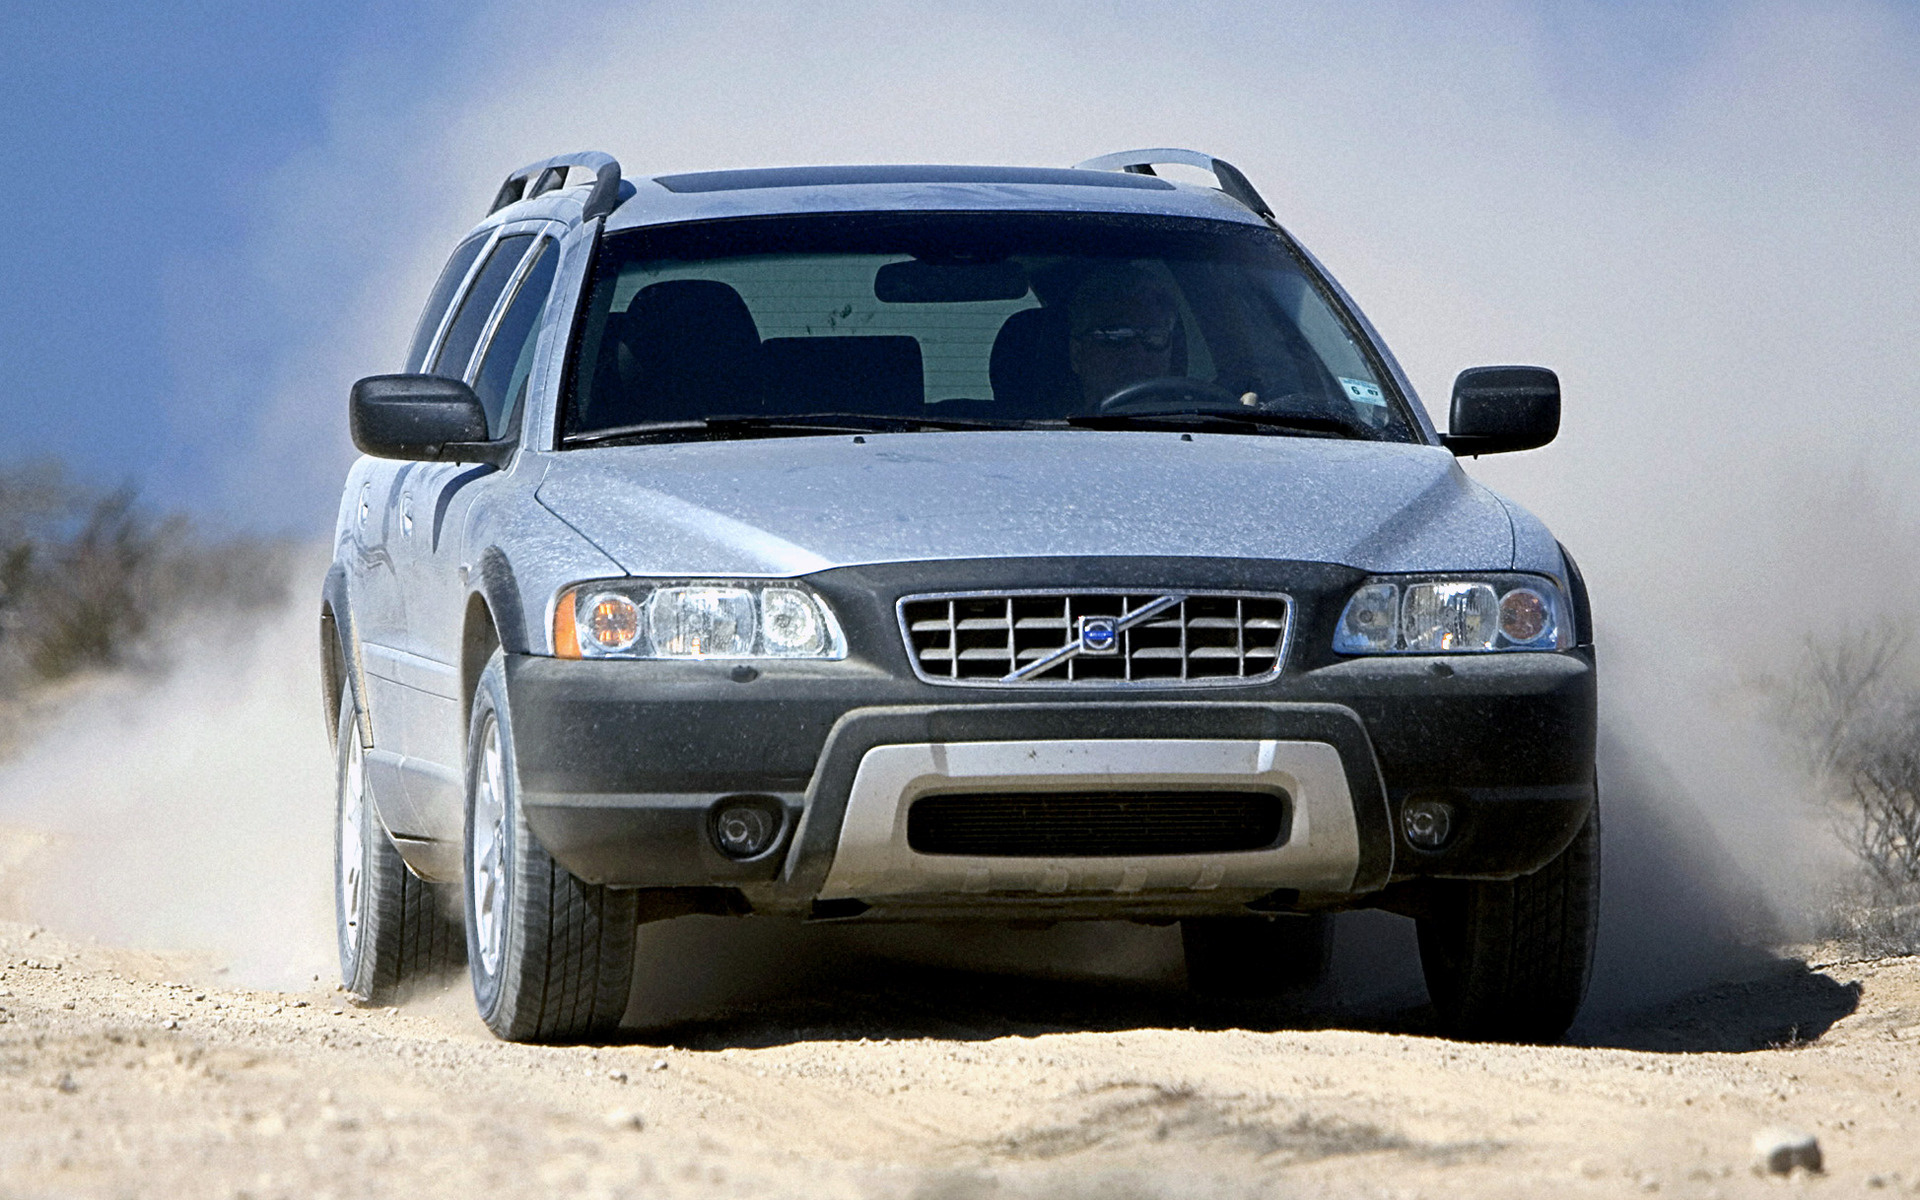 Volvo XC70 (2004) US Wallpapers and HD Images - Car Pixel